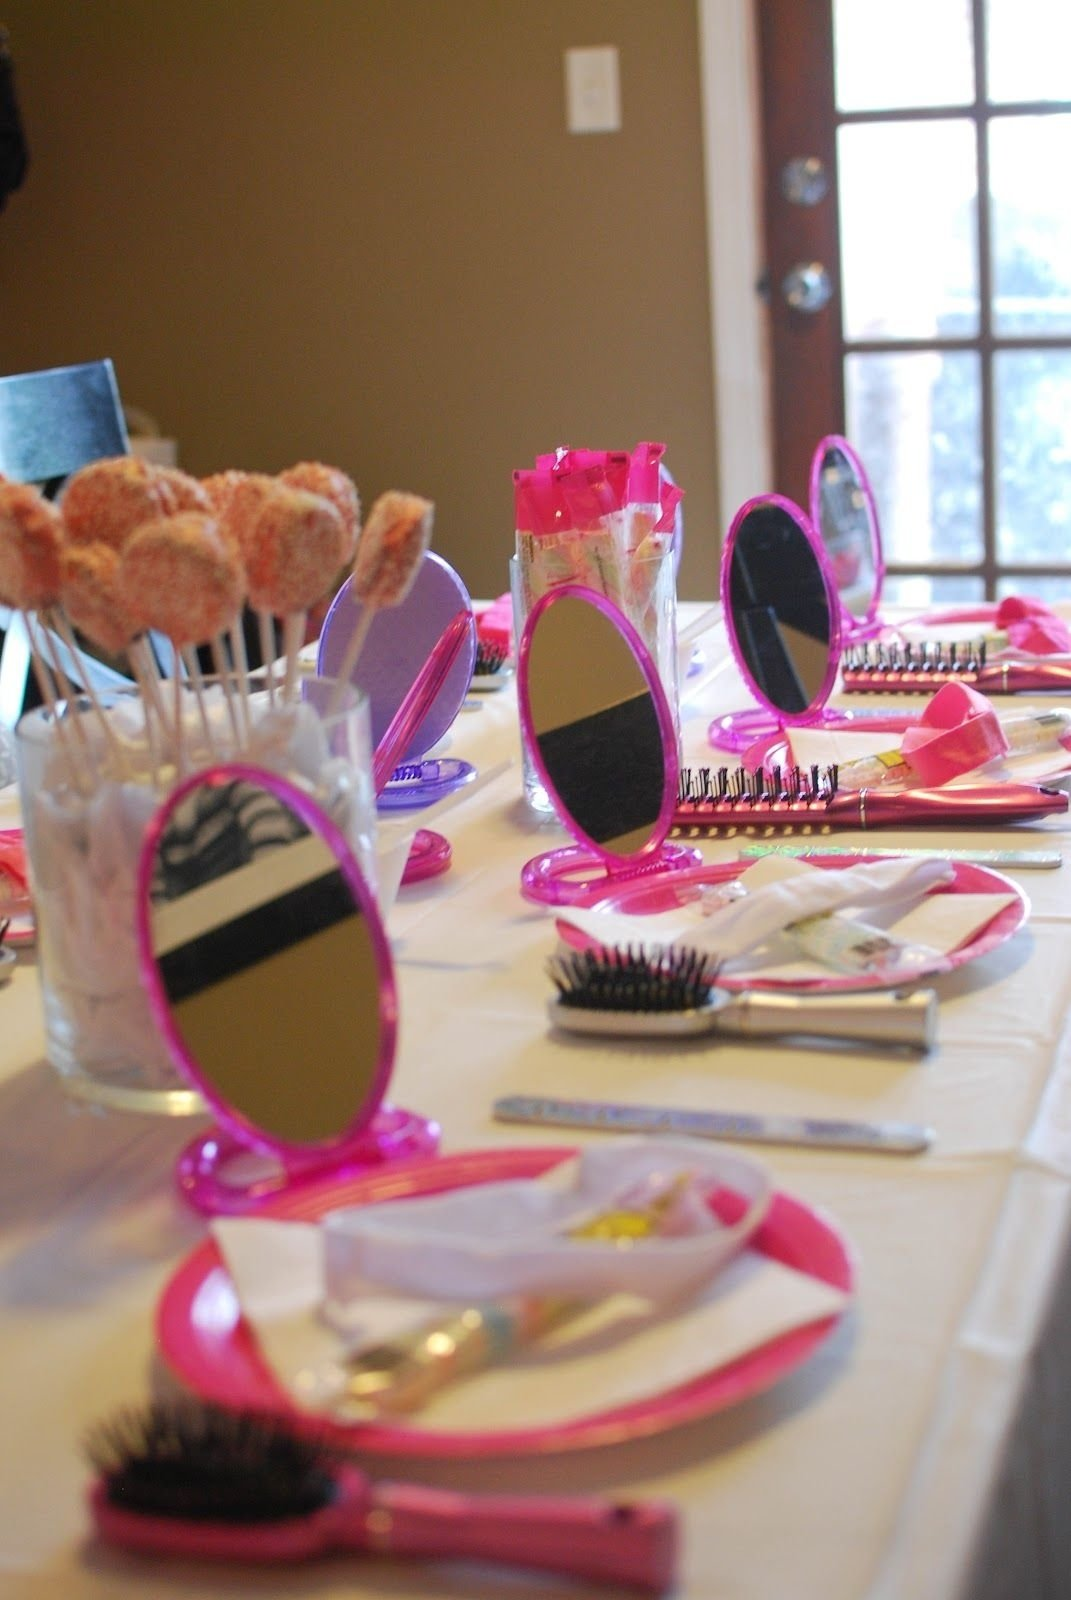 10 Lovely Baby Girl Birthday Party Ideas spa party ideas for 8 yr old girls remember this for the twins via 5 2020